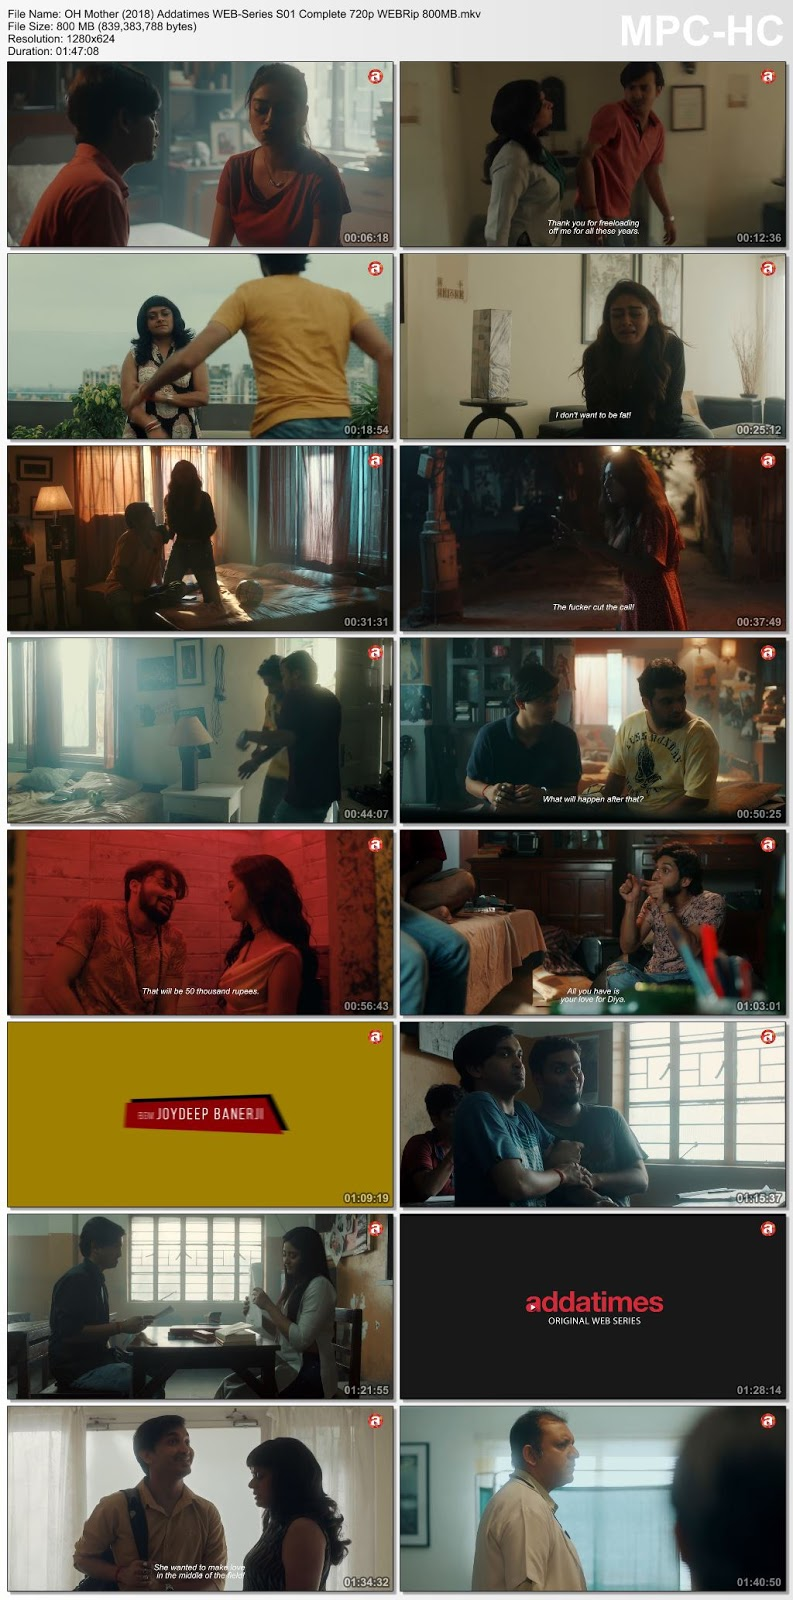 18+ OH Mother (2018) Addatimes S01 Complete WEB-Series 720p